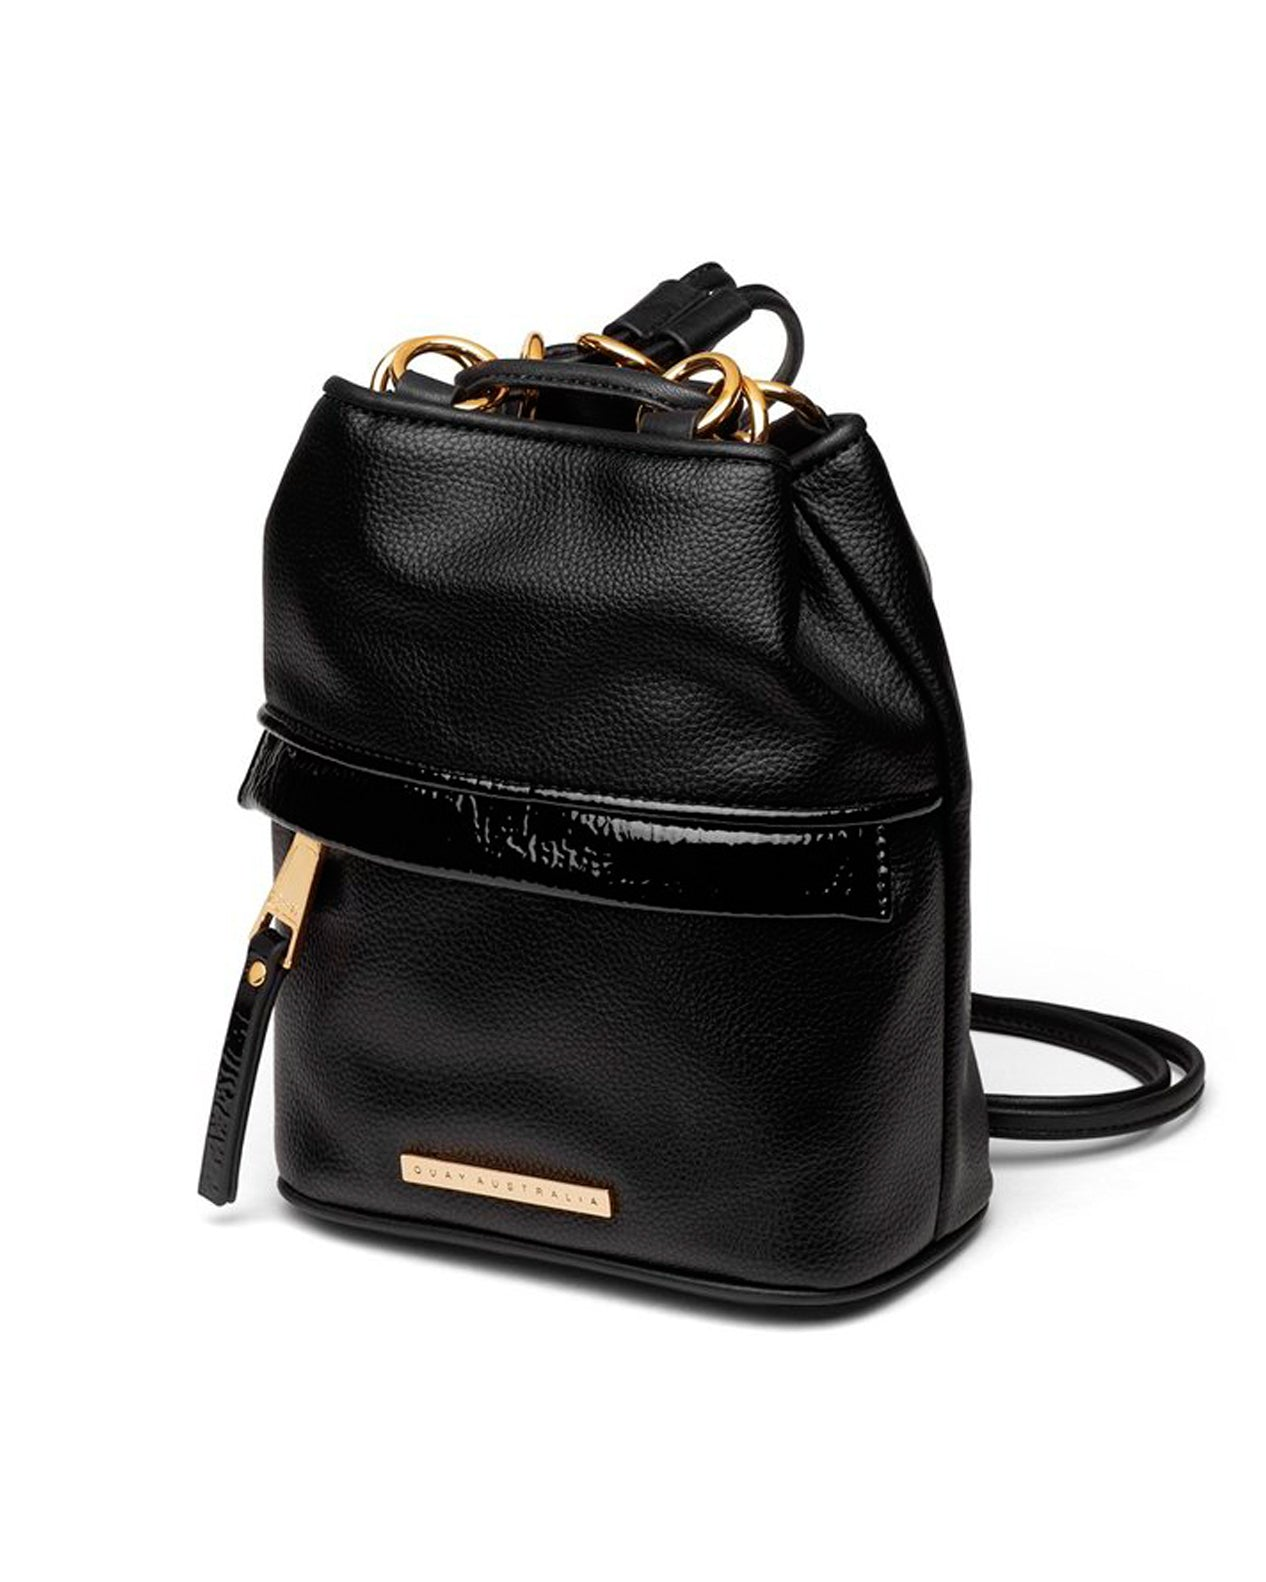 Quay Drawstring Backpack - Black Gold